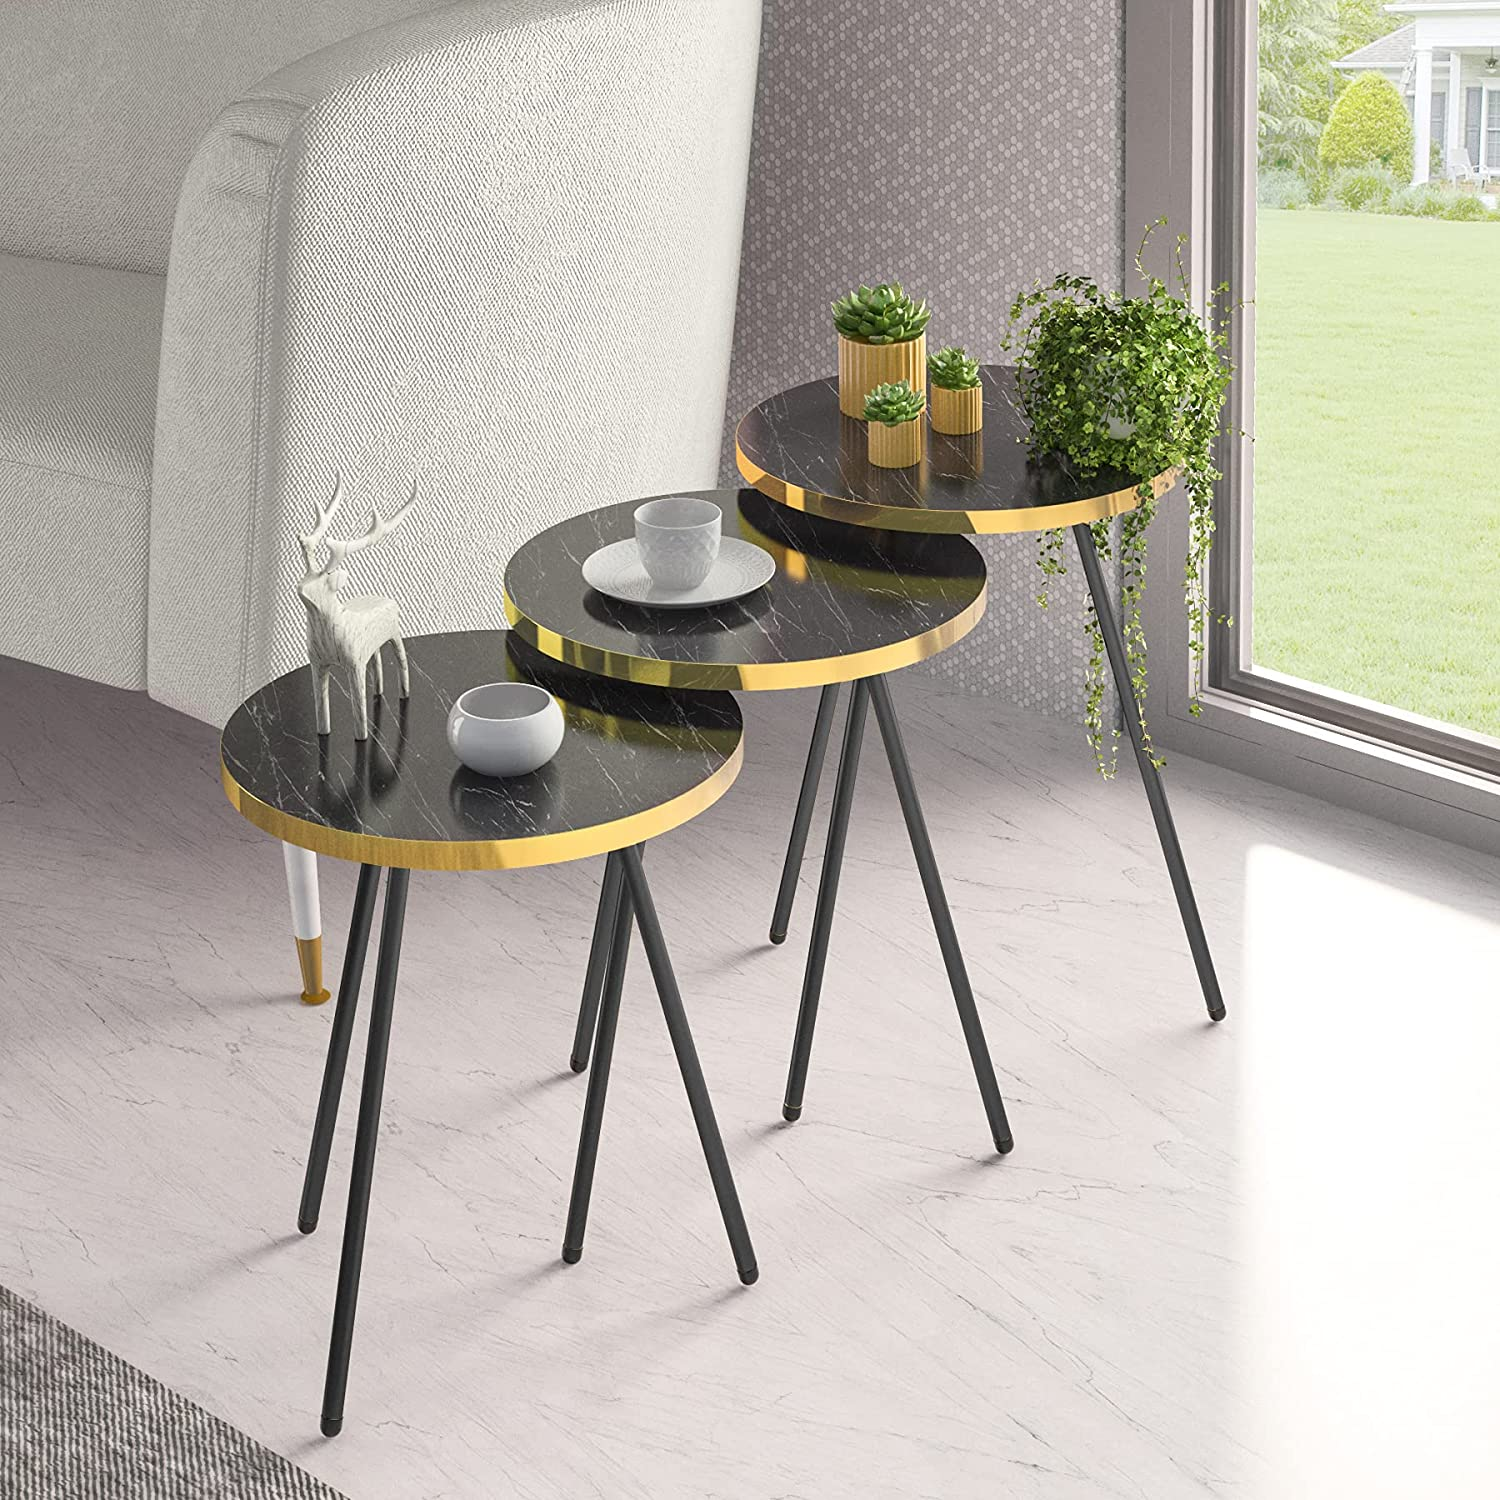 Set High quality new Max 56% OFF of 3 Nesting END Tables HOME Round Stacking DECOR SUNRISE -